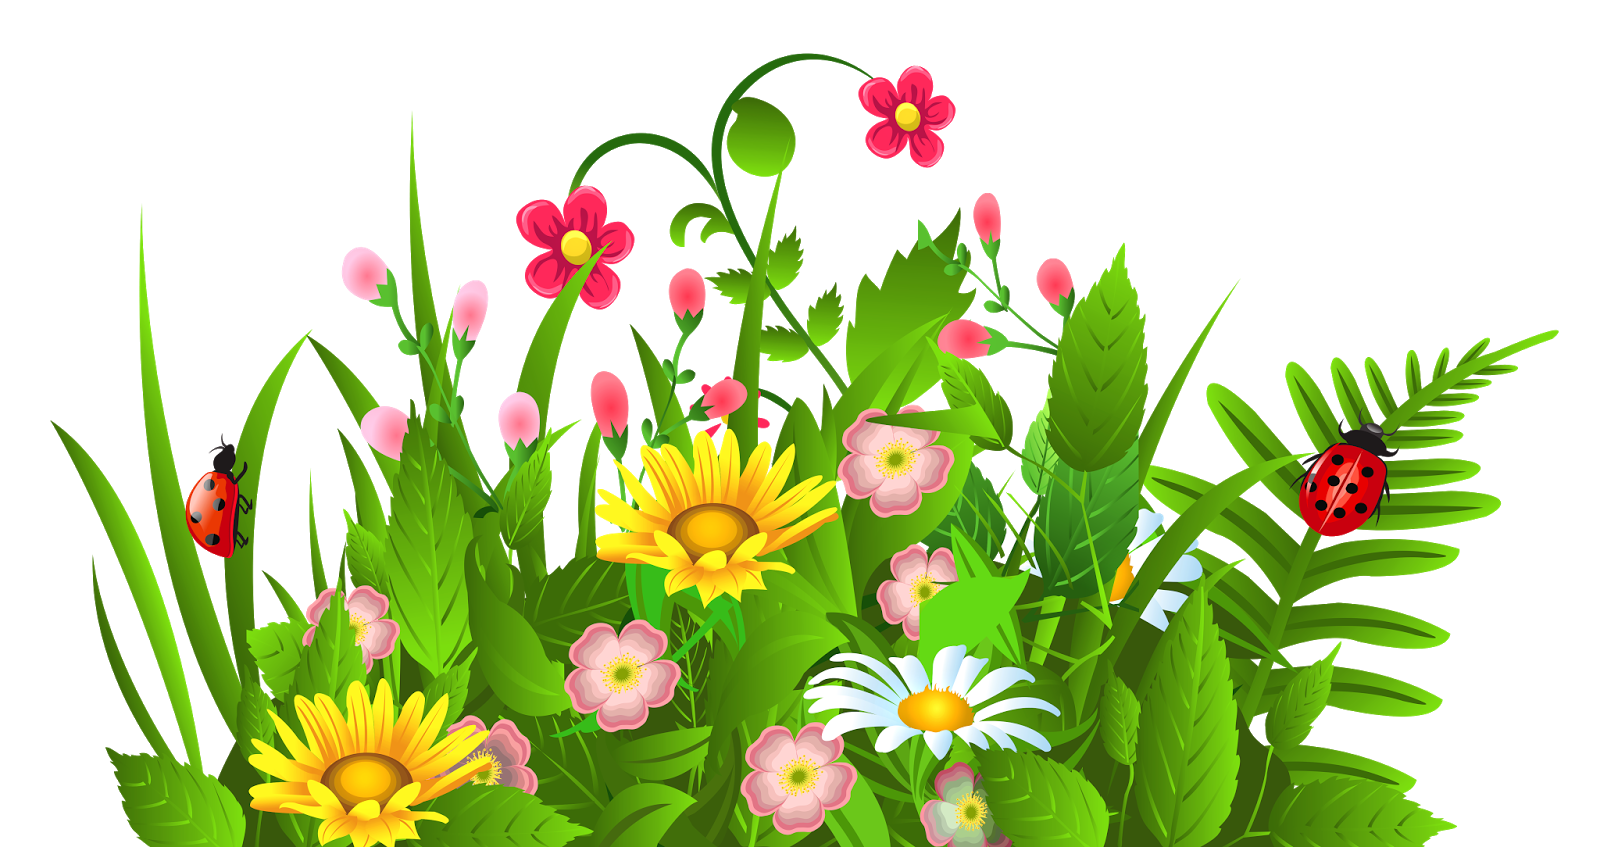 Picture clipart garden, Picture garden Transparent FREE for.